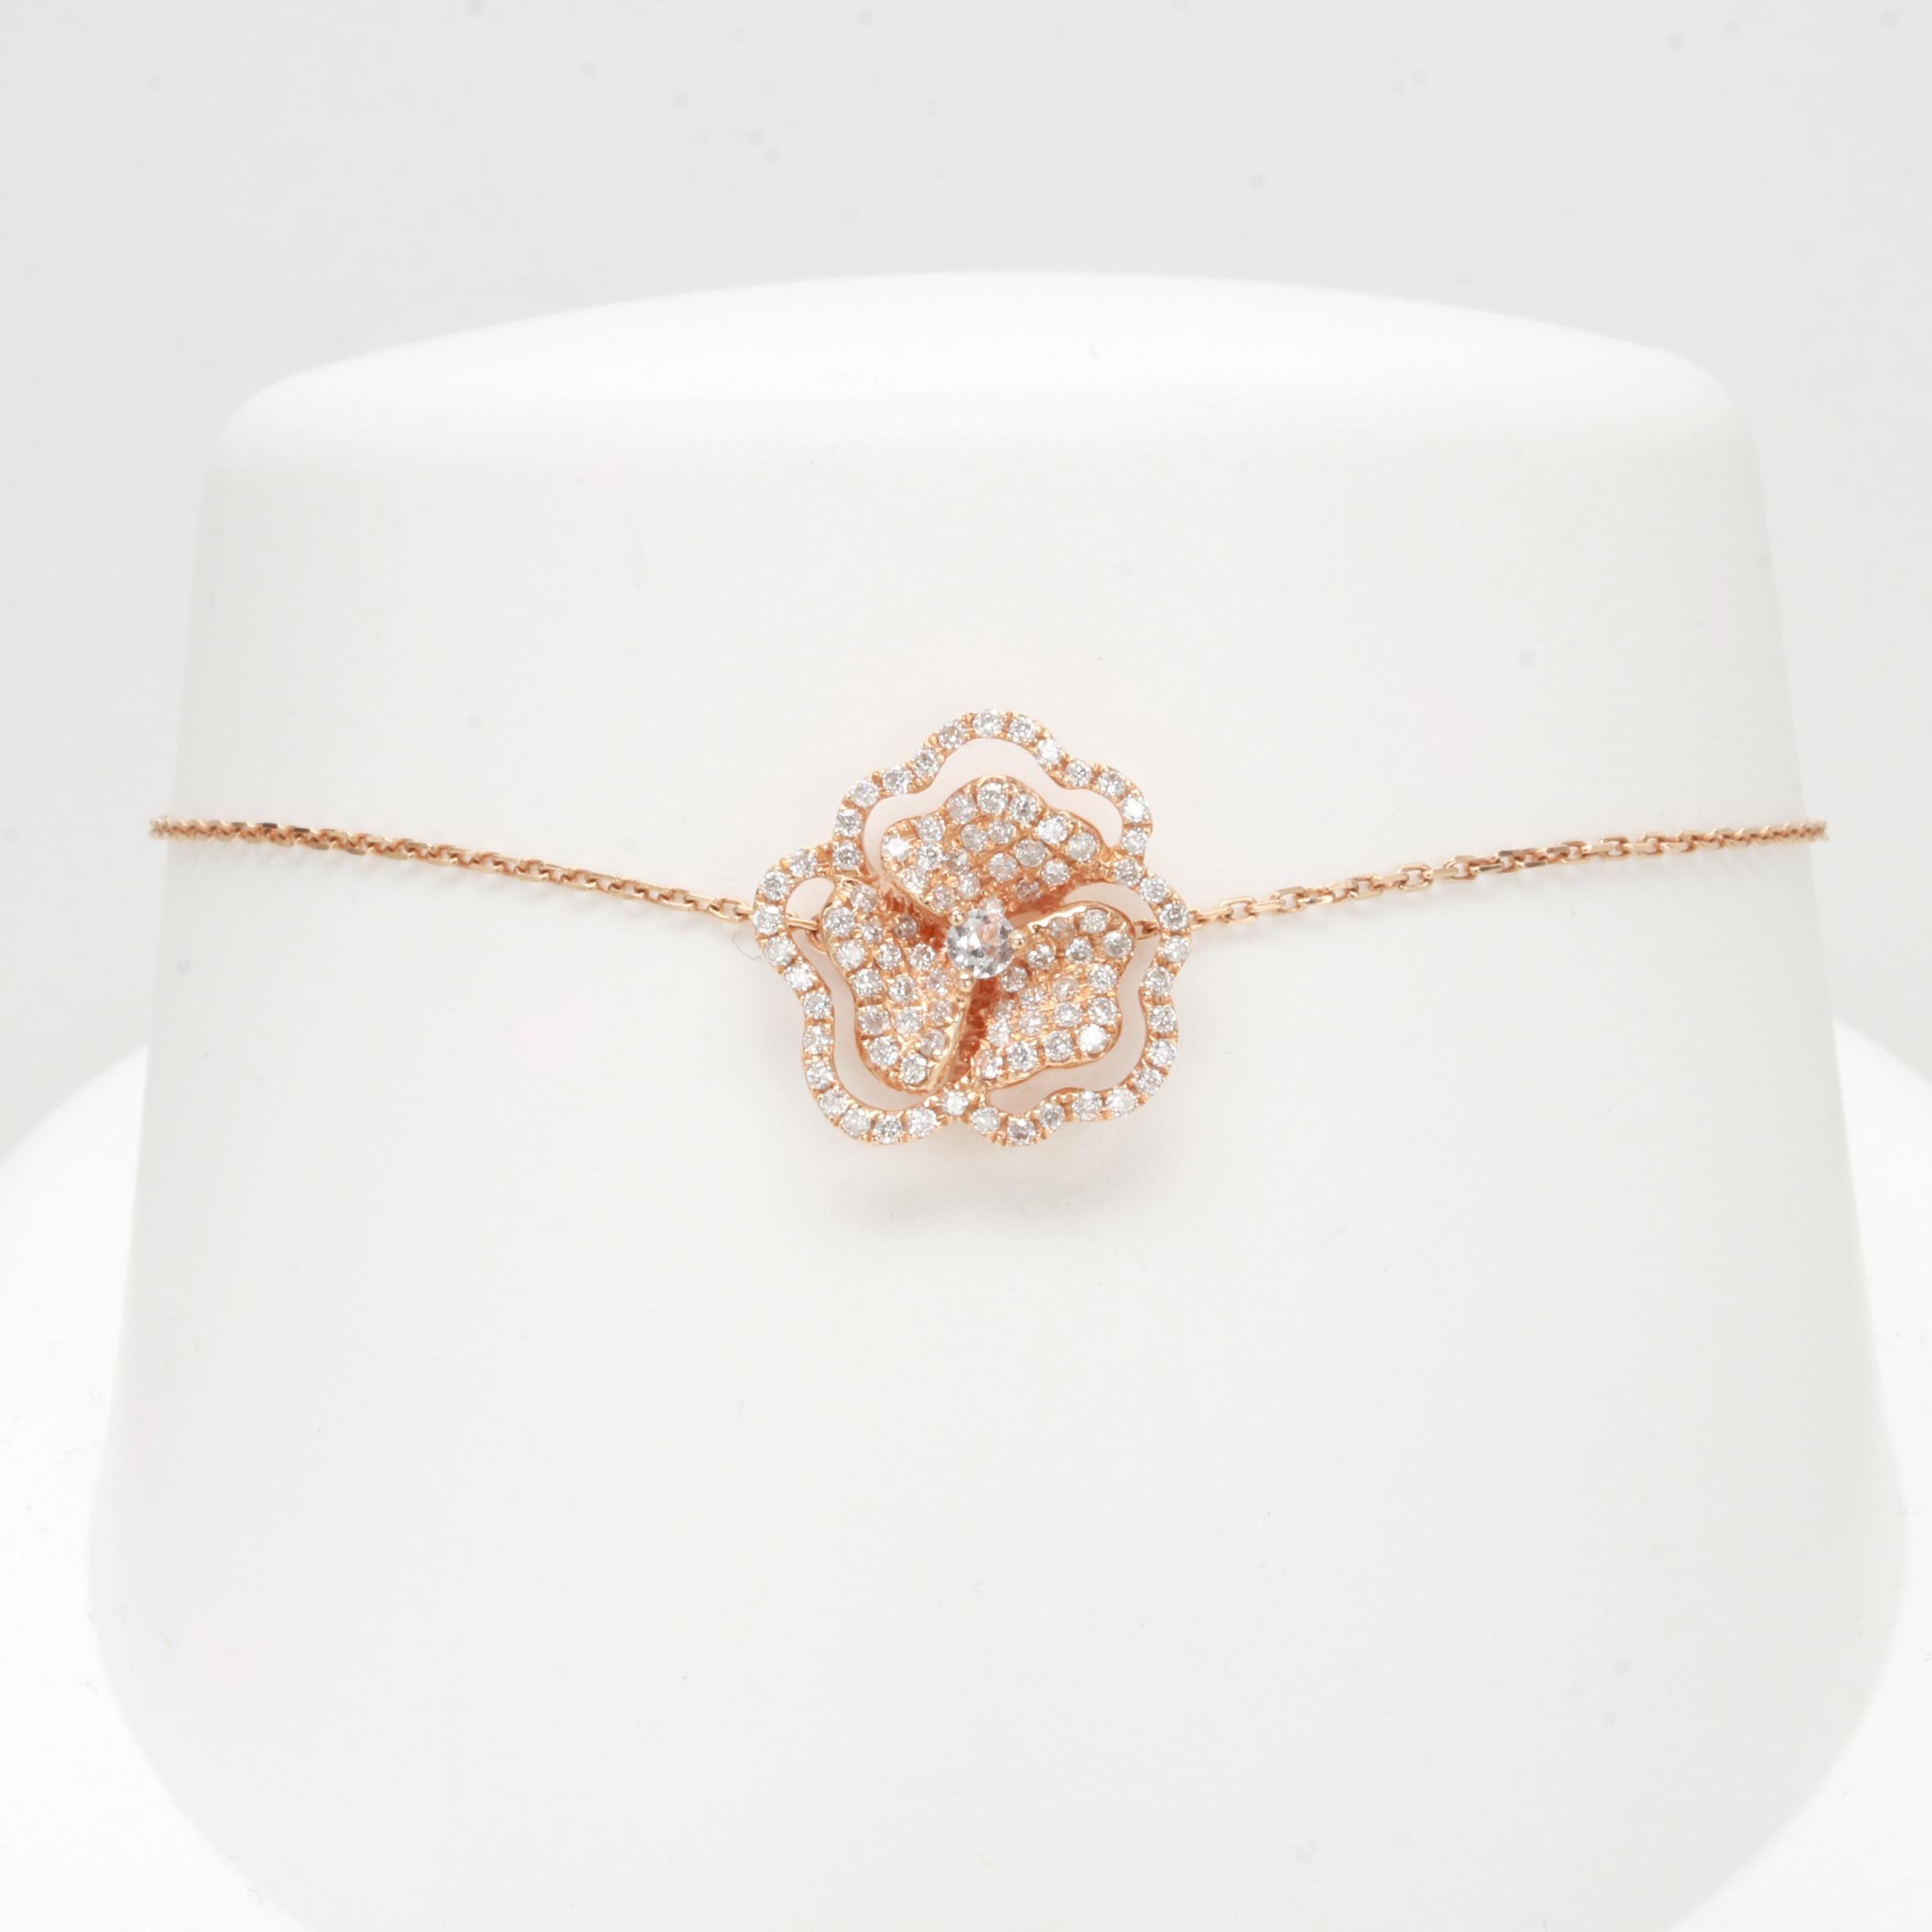 18K Rose Gold Diamond and White Sapphire Bracelet